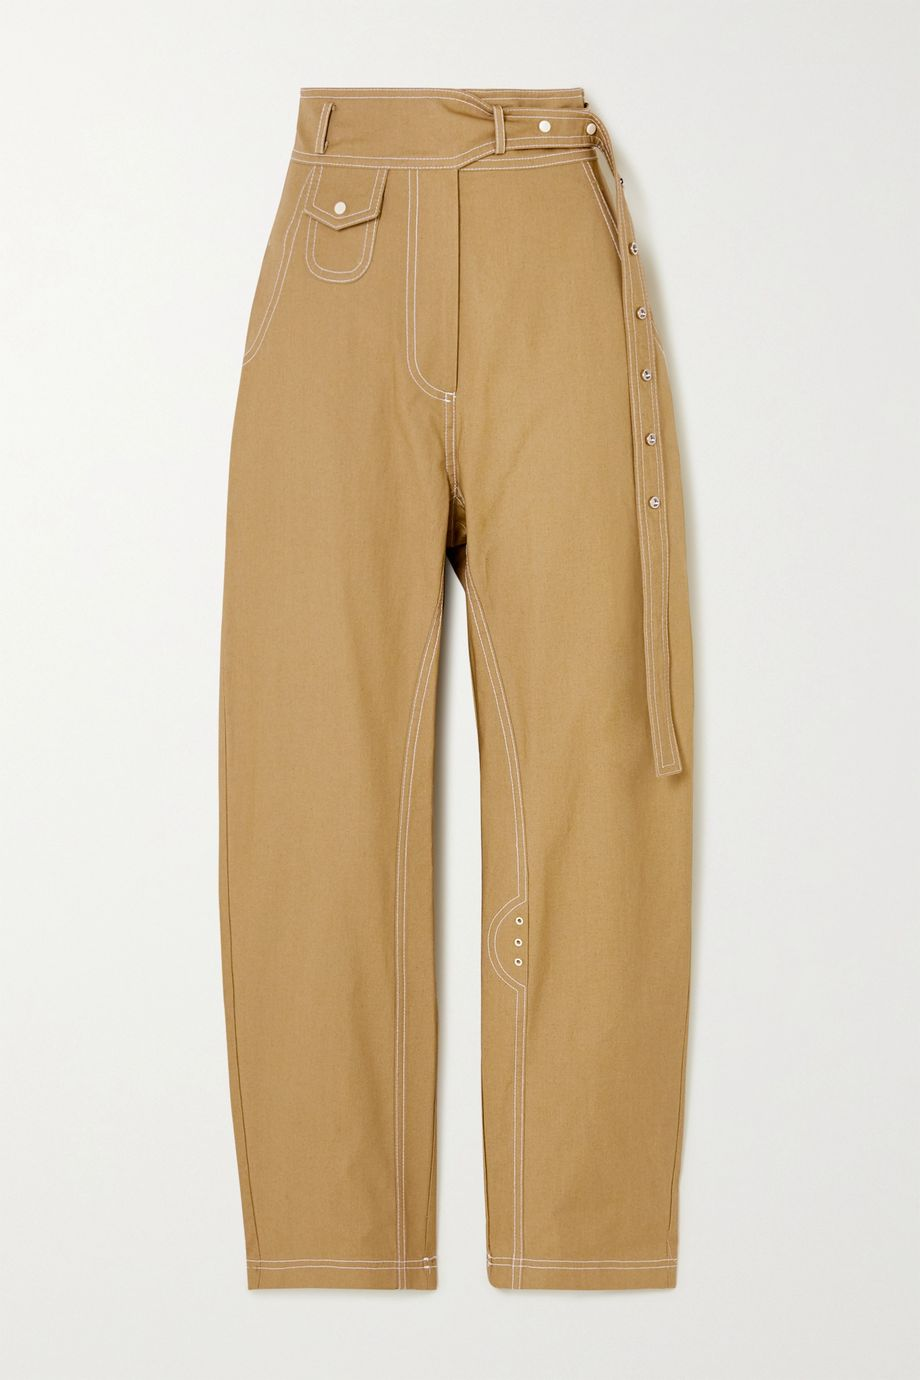 LOW CLASSIC Topstitched cotton tapered pants